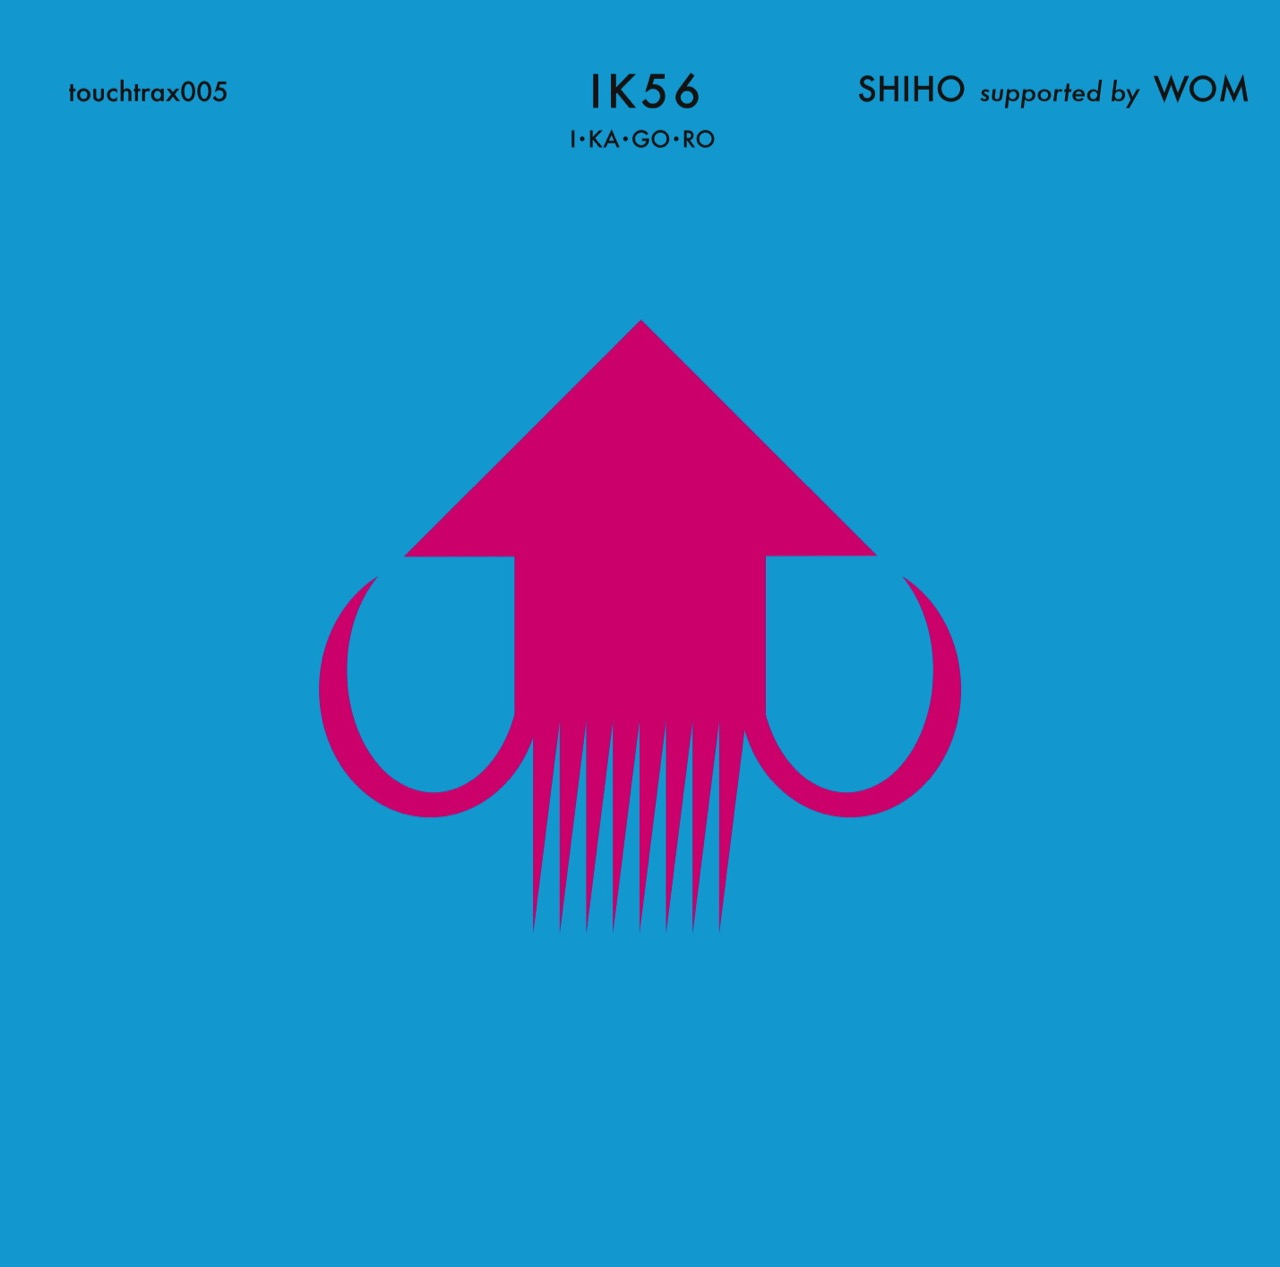 SHIHO supported by WOM 'touchtrax 005 : IK56'